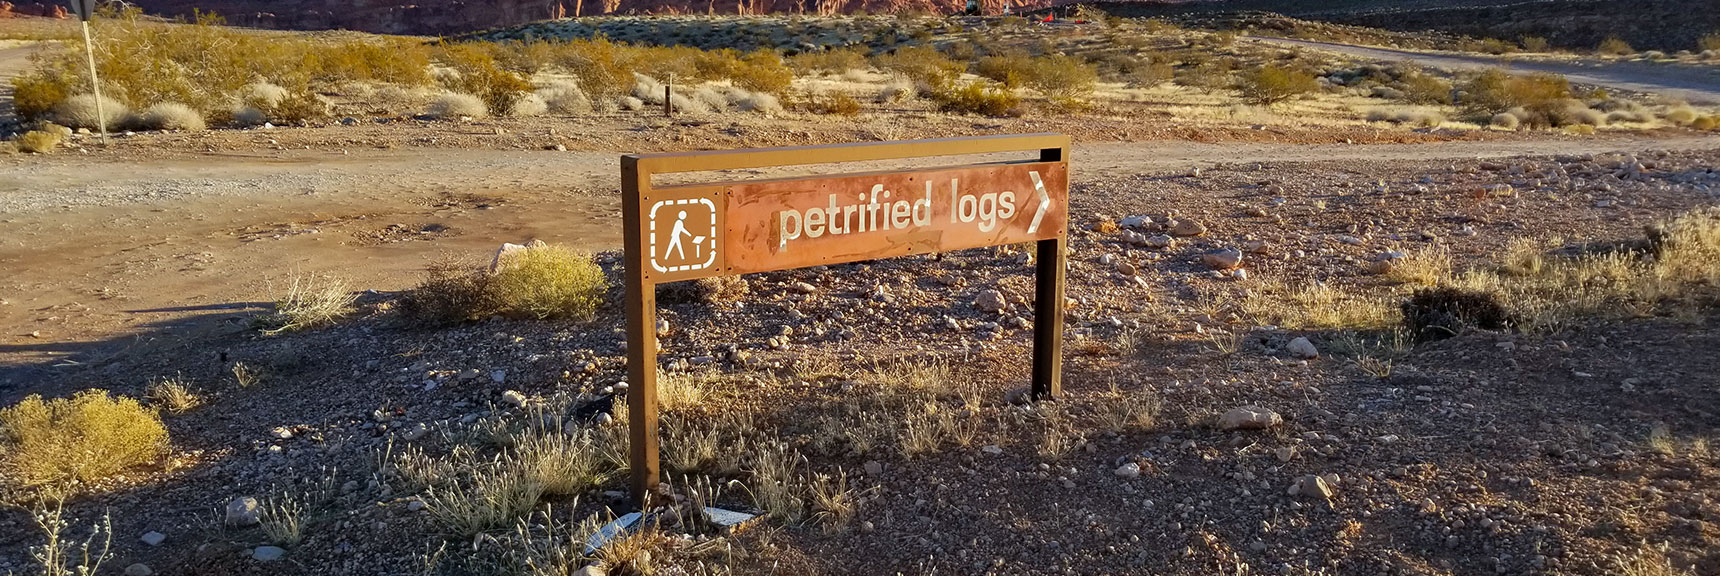 Entrance to Petrified Logs Loop in Valley of Fire State Park, Nevada